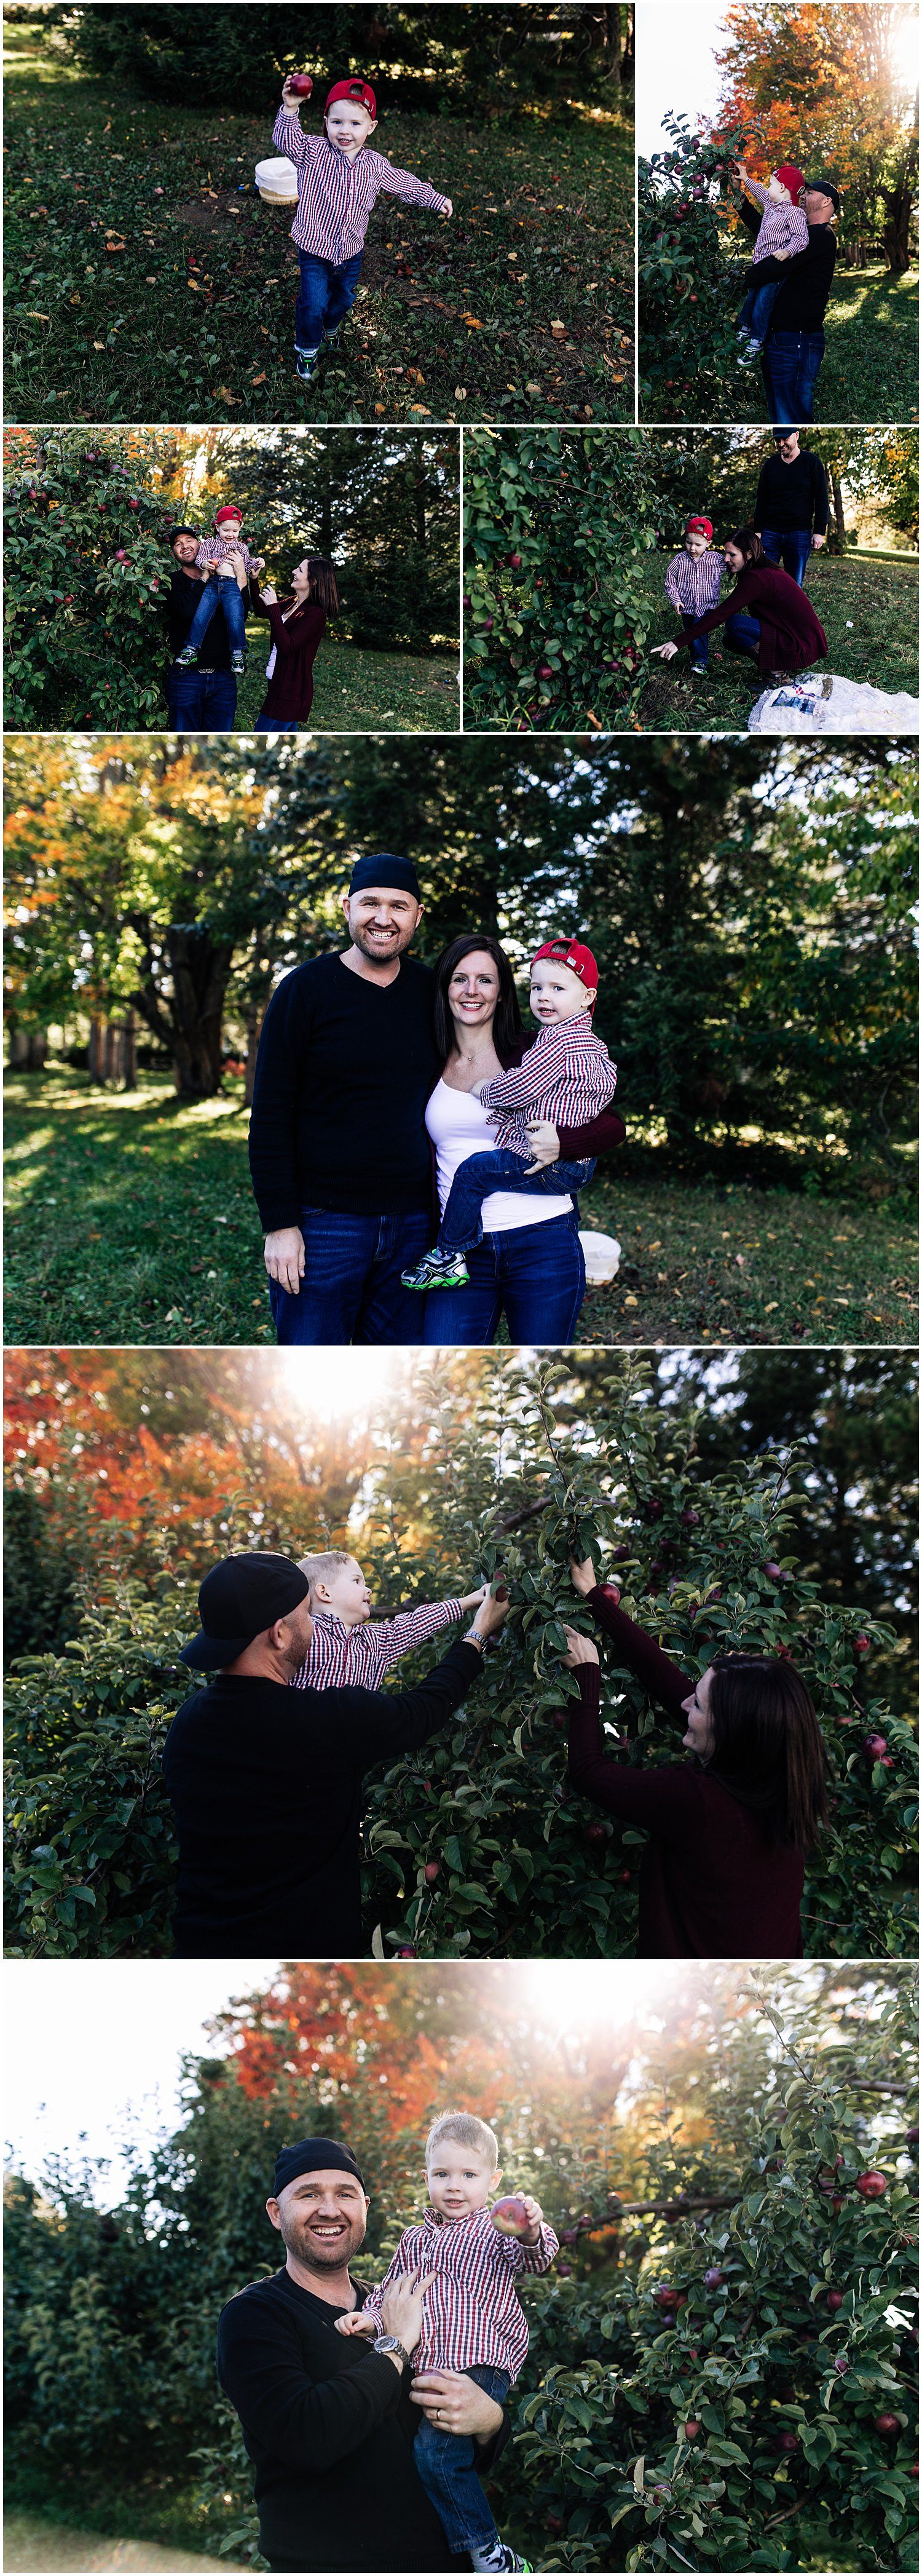 Family at an apple orchard